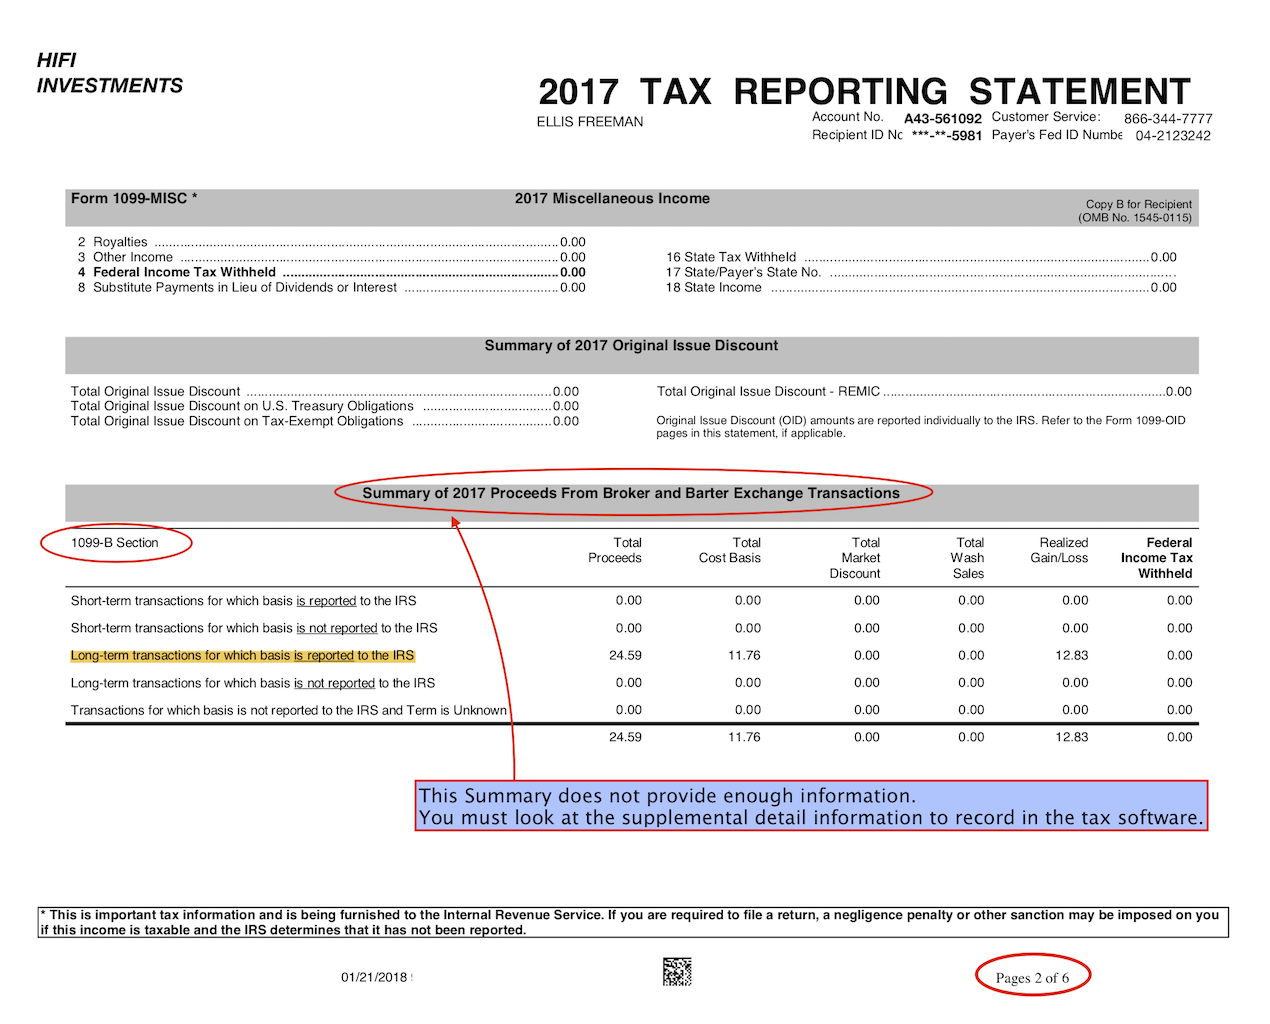 There is not enough detail in this SUMMARY to record the transactions.  Find the DETAIL  information in the later pages of the Tax Reporting Statement.